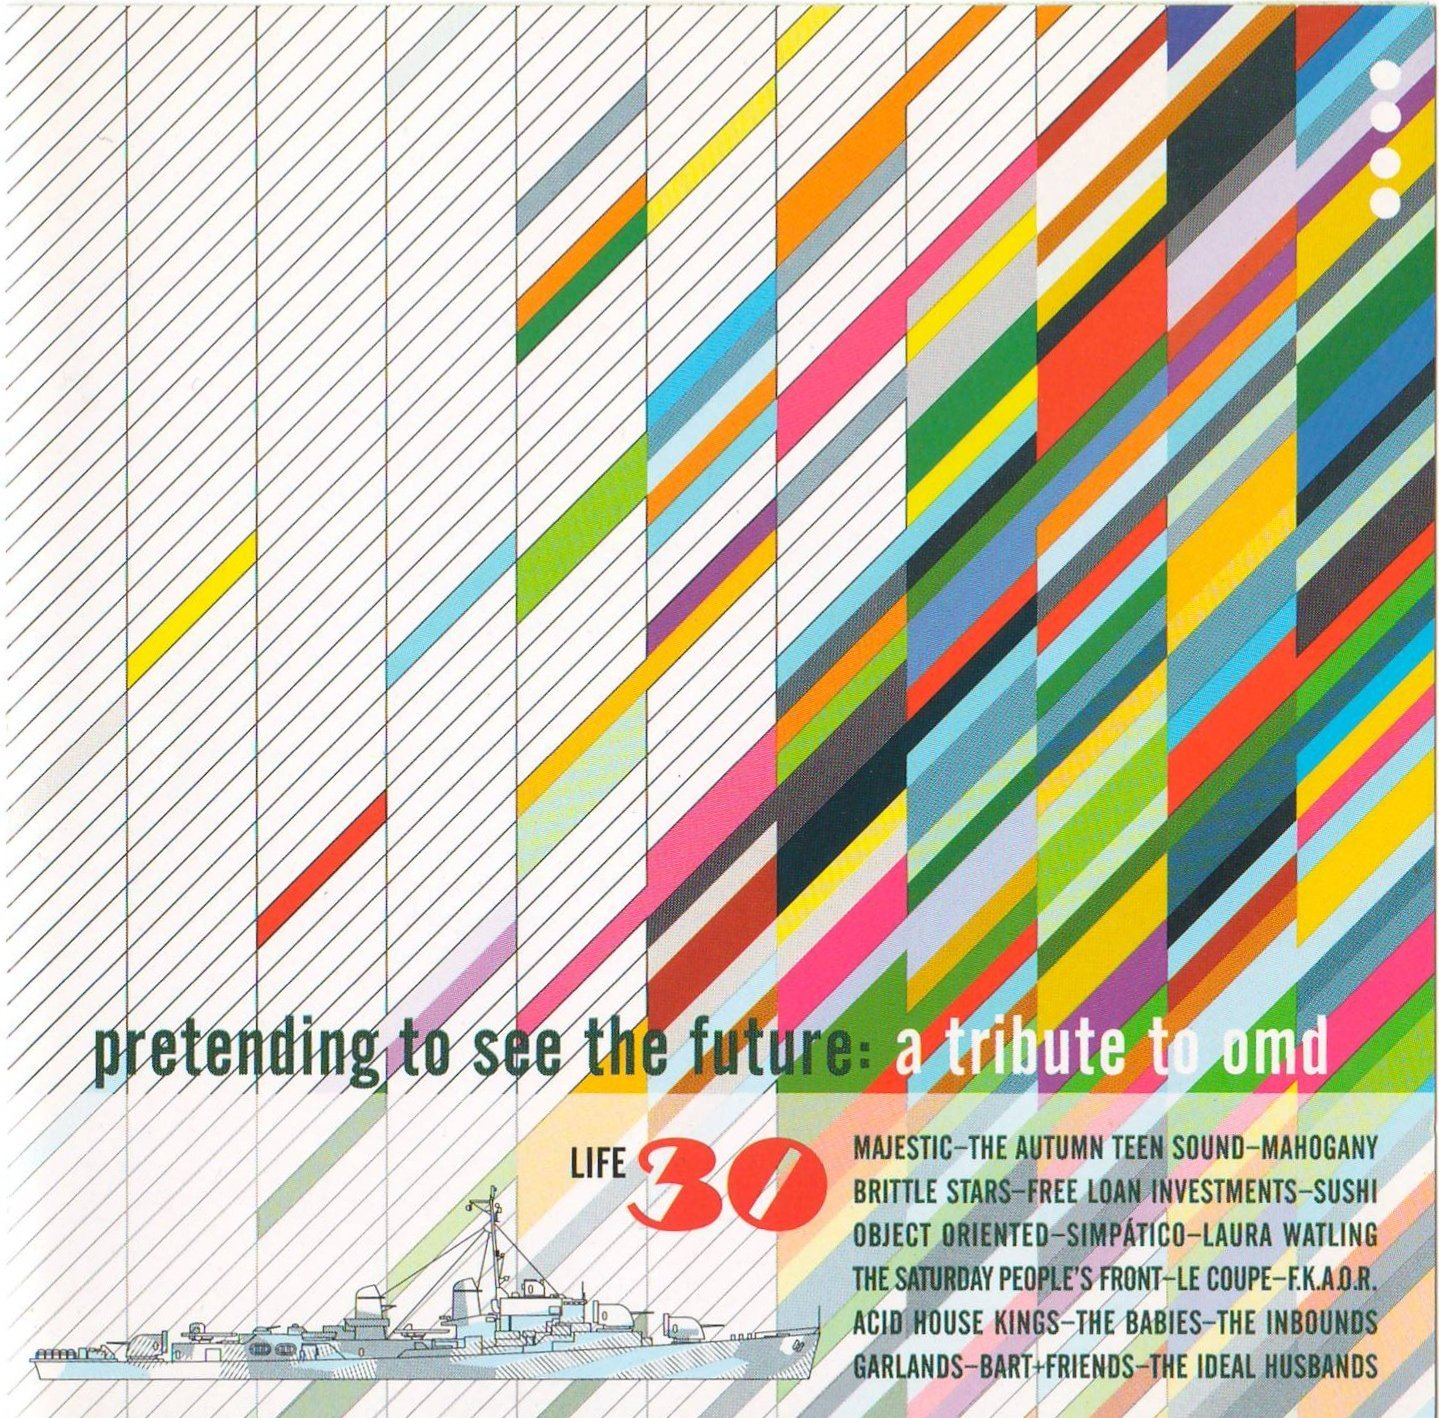 Pretending to See the Future: A Tribute to OMD by Shelflife Records